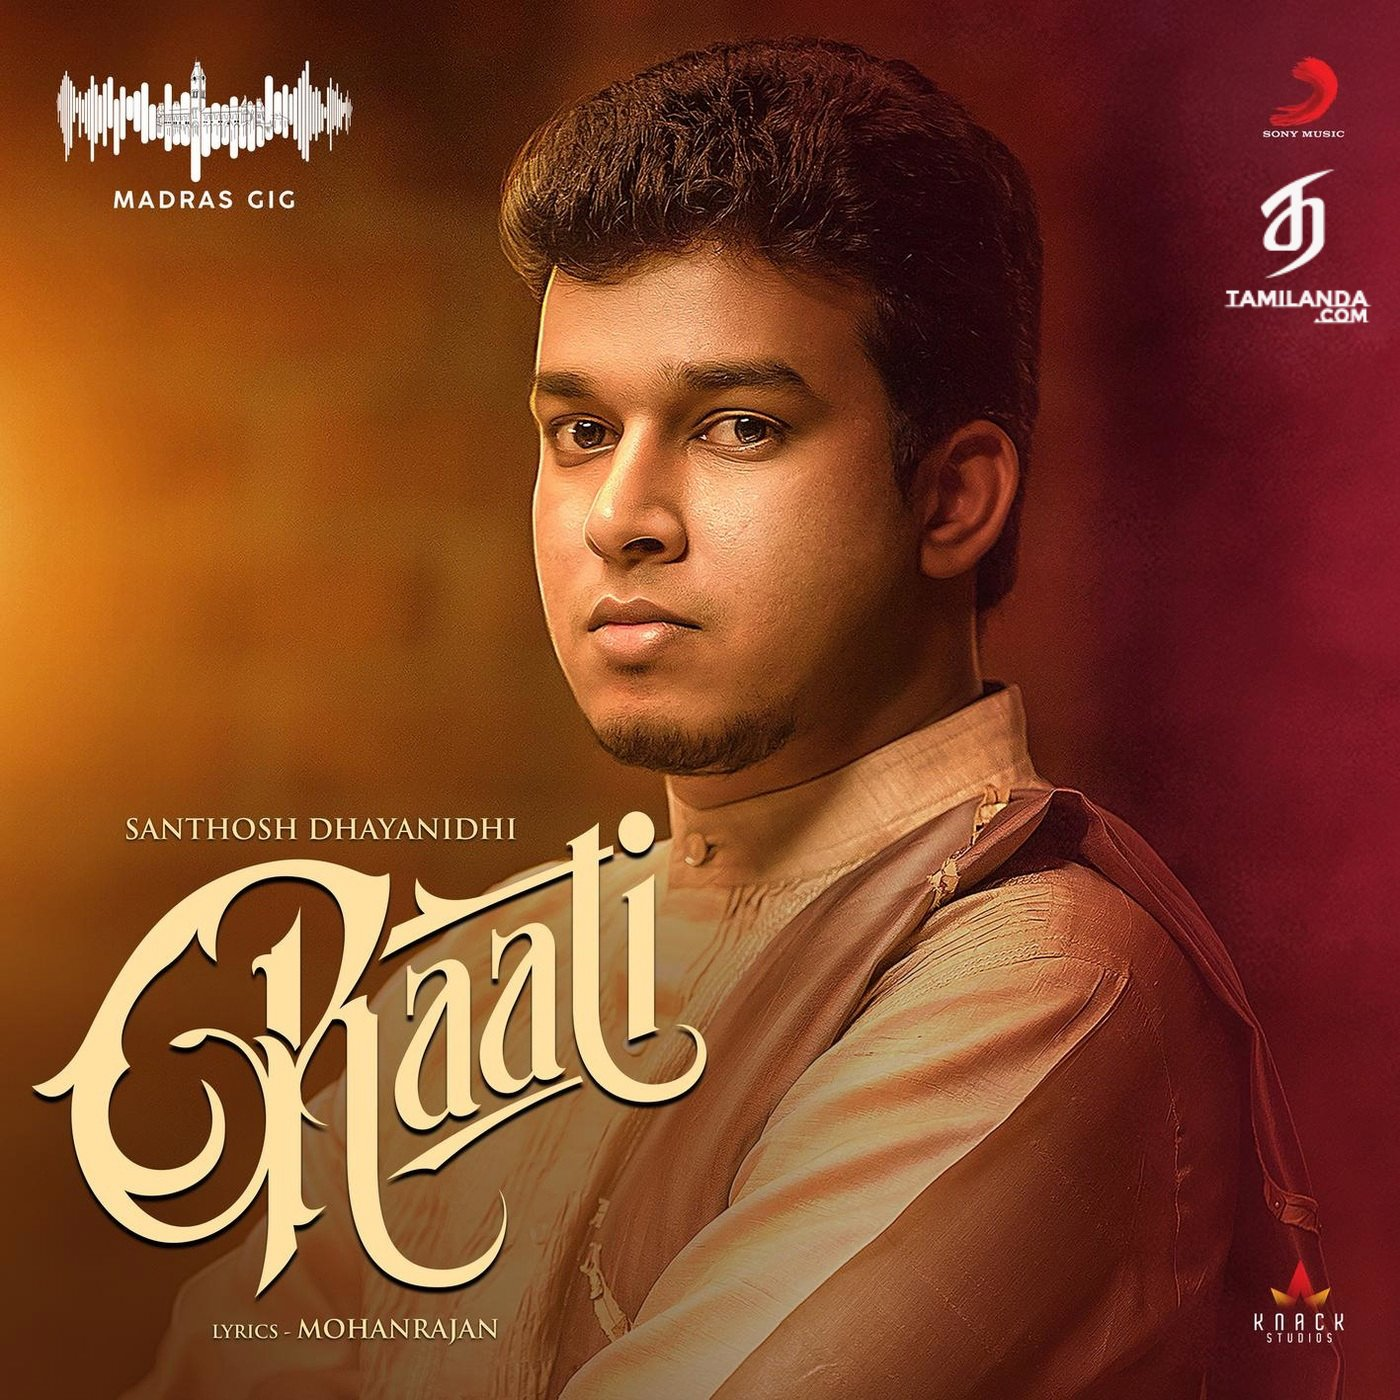 Raati (Madras Gig) (Single) 24 BIT 48 KHZ FLAC Song